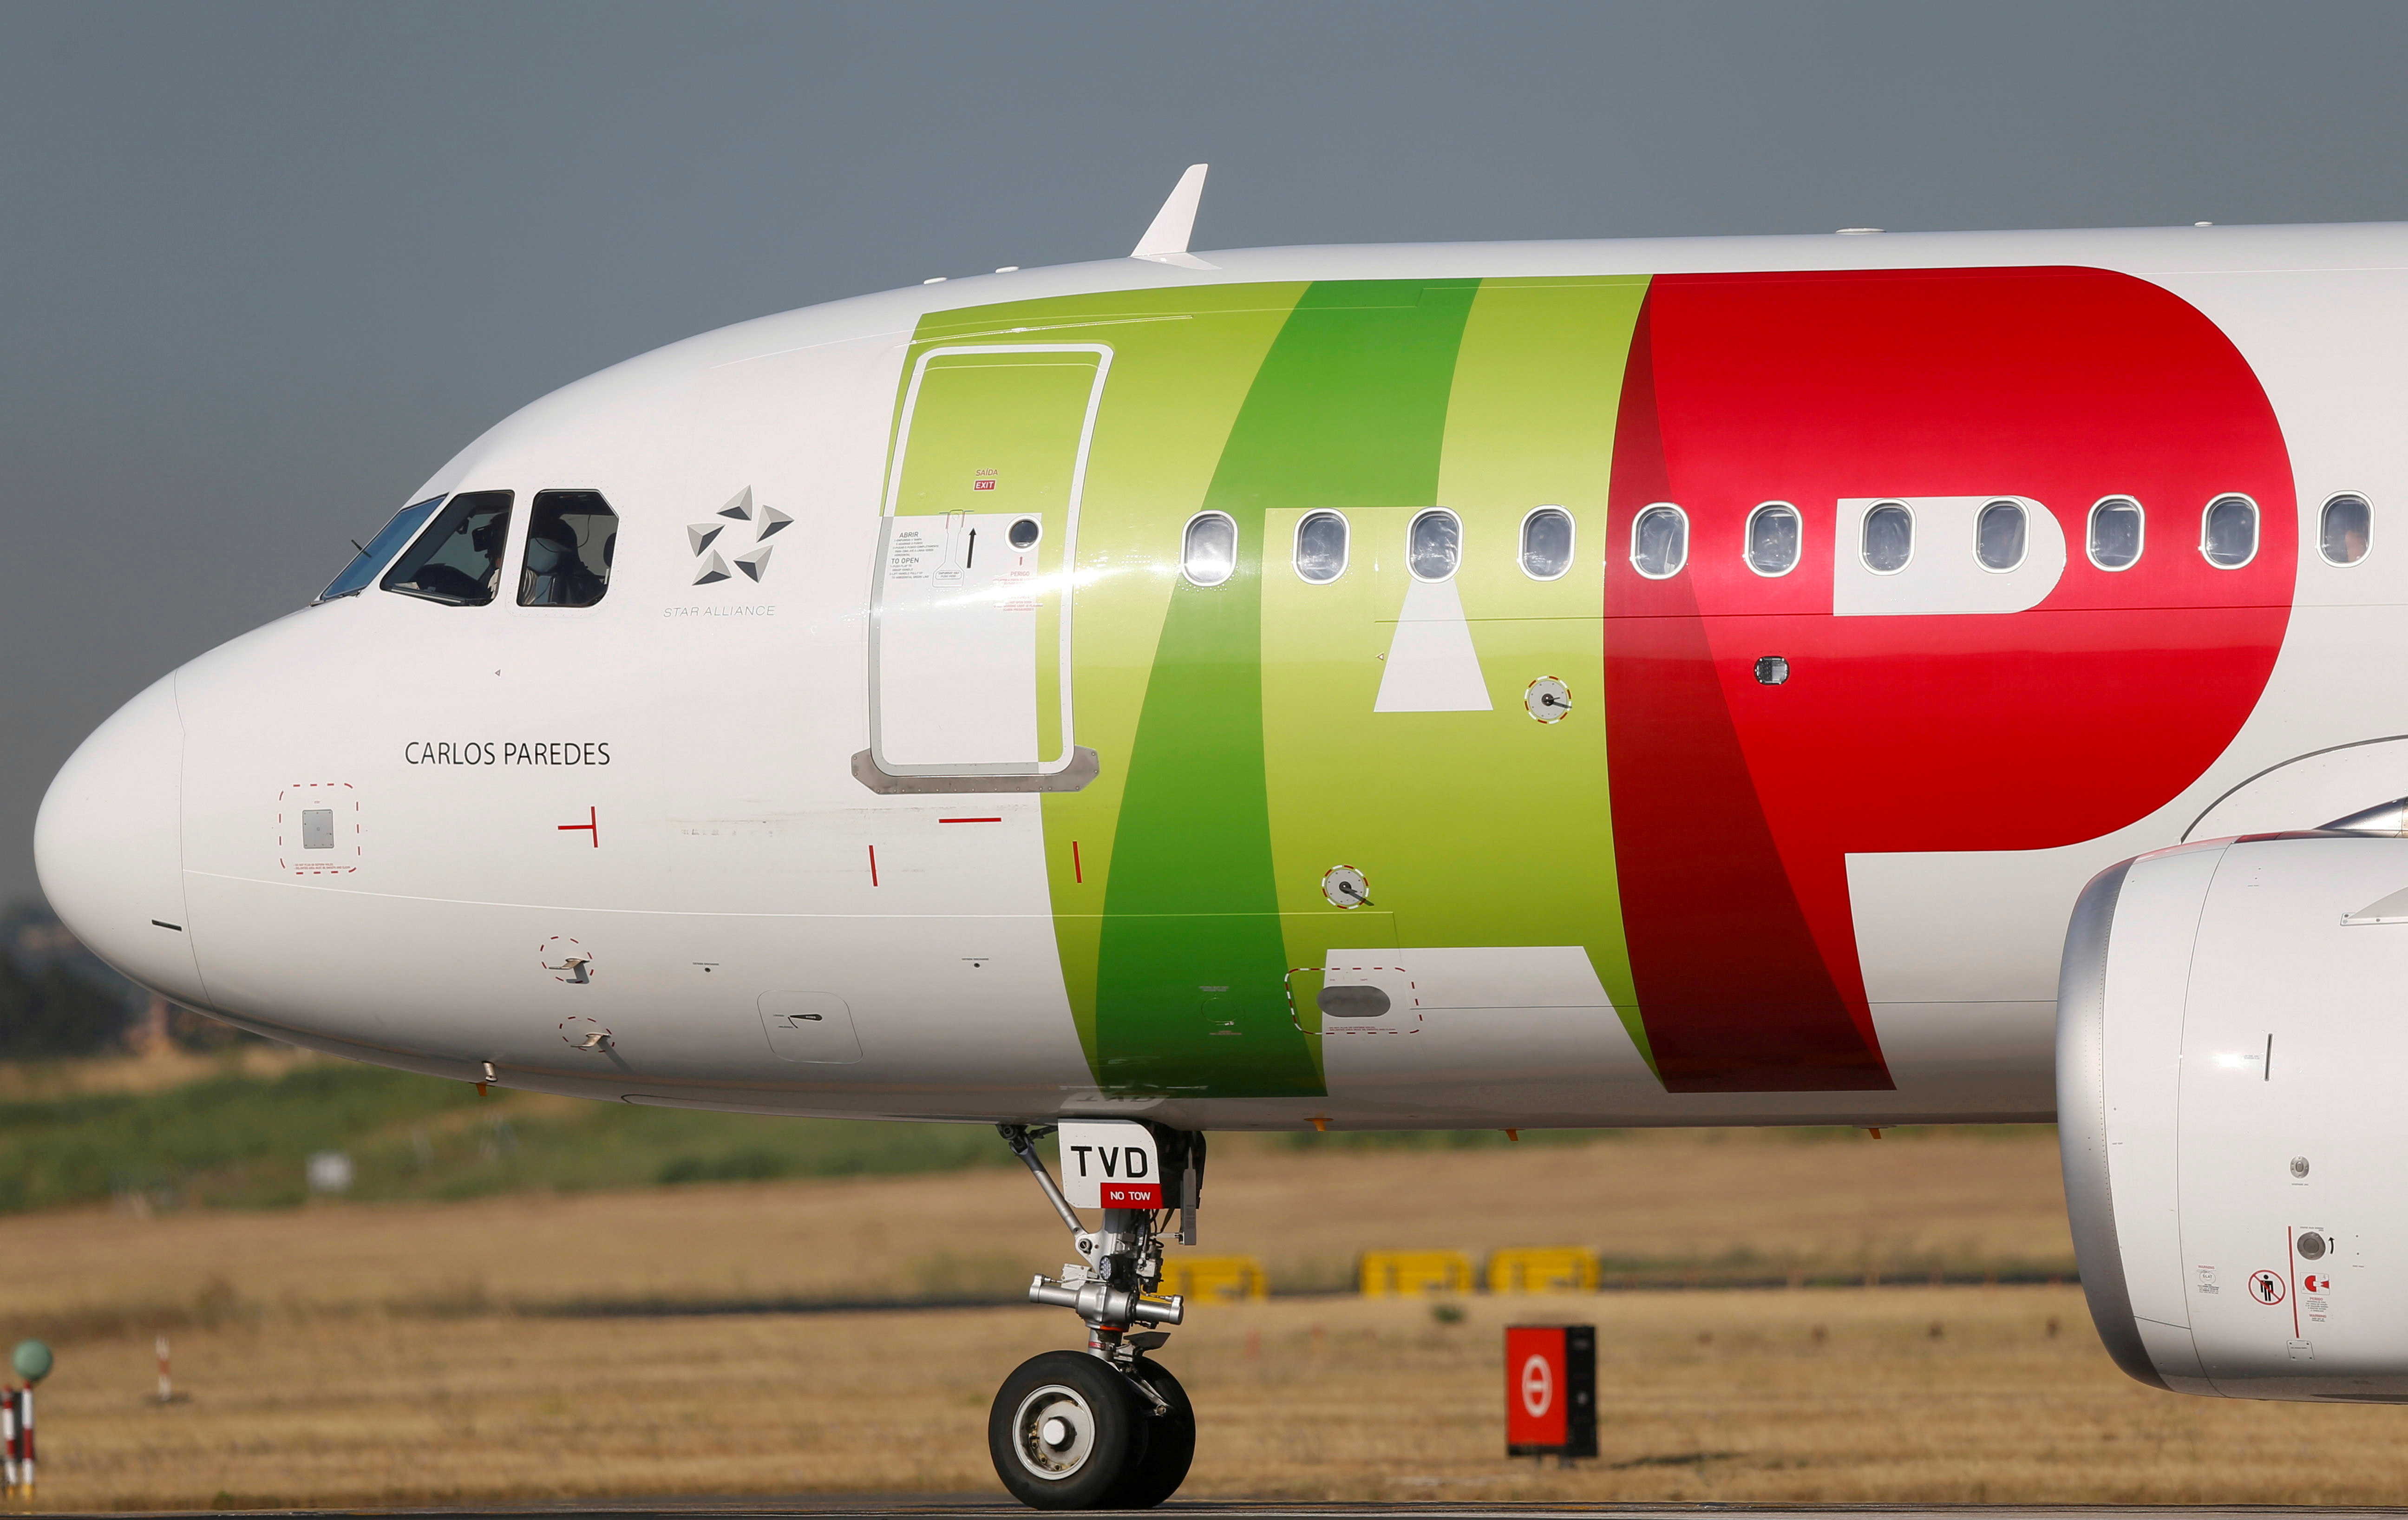 A TAP Air Portugal plane taxis at Lisbon's airport during the coronavirus disease (COVID-19) outbreak, in Lisbon, Portugal July 17, 2020.  REUTERS/Rafael Marchante/File Photo/File Photo